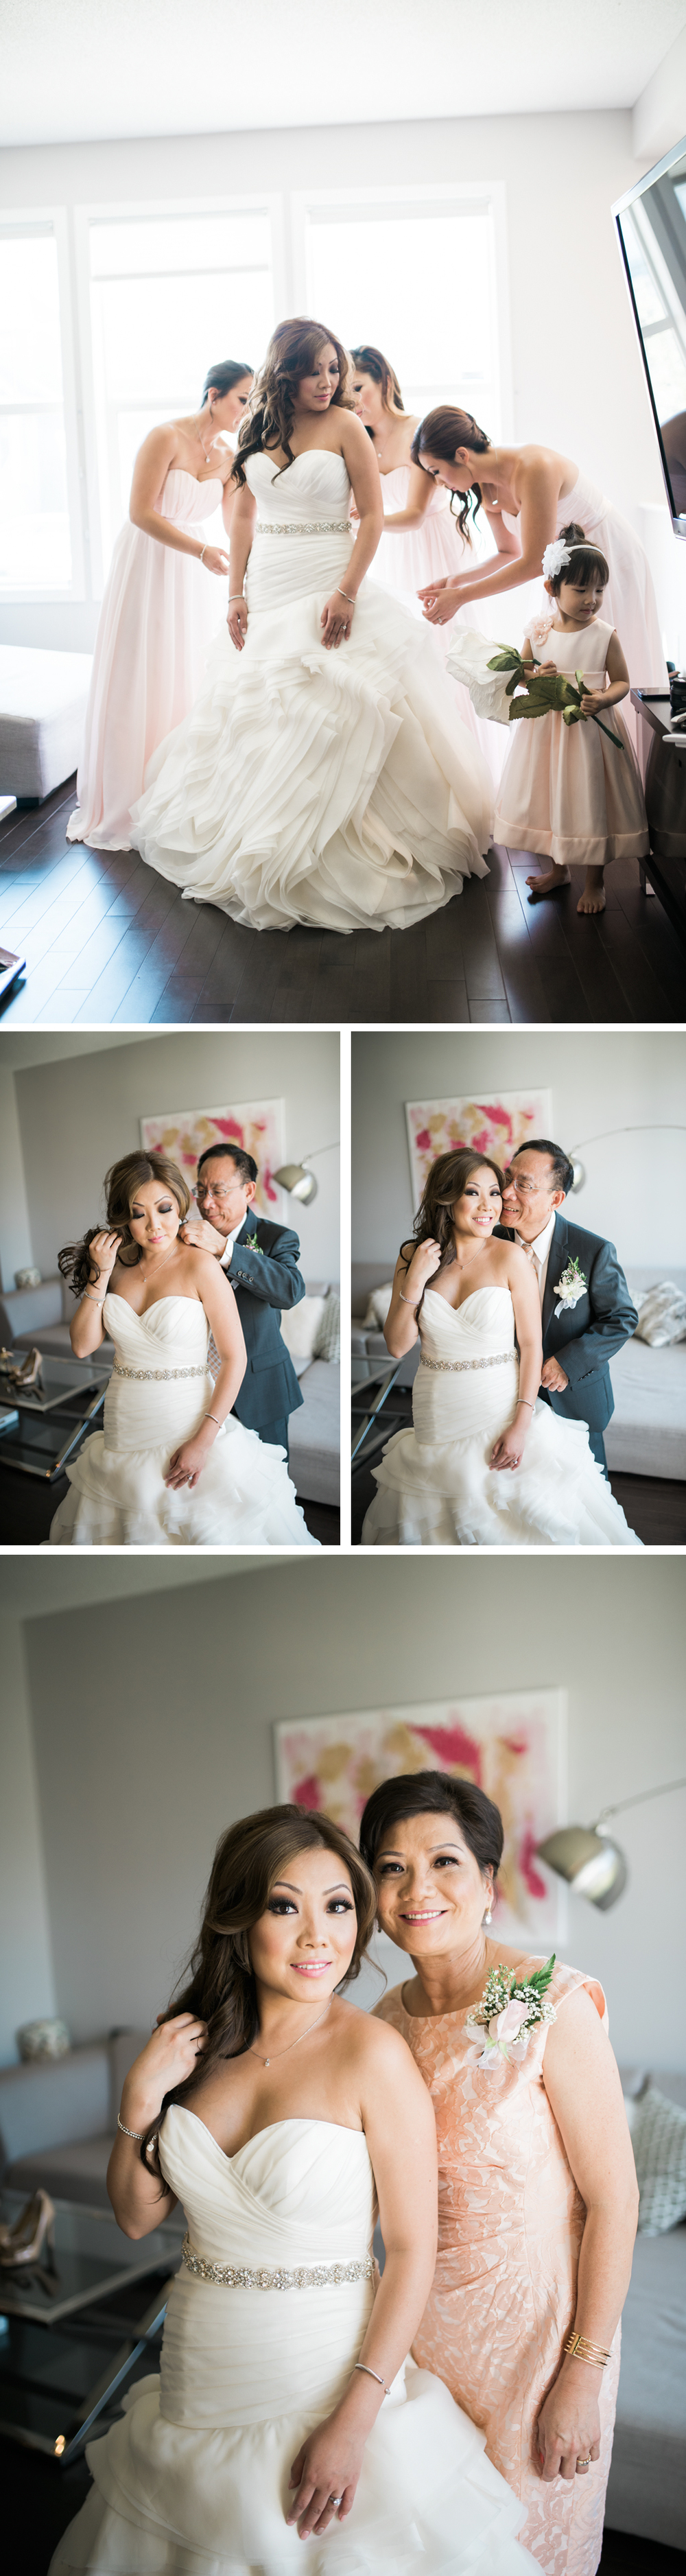 Calgary Wedding Photographer 7